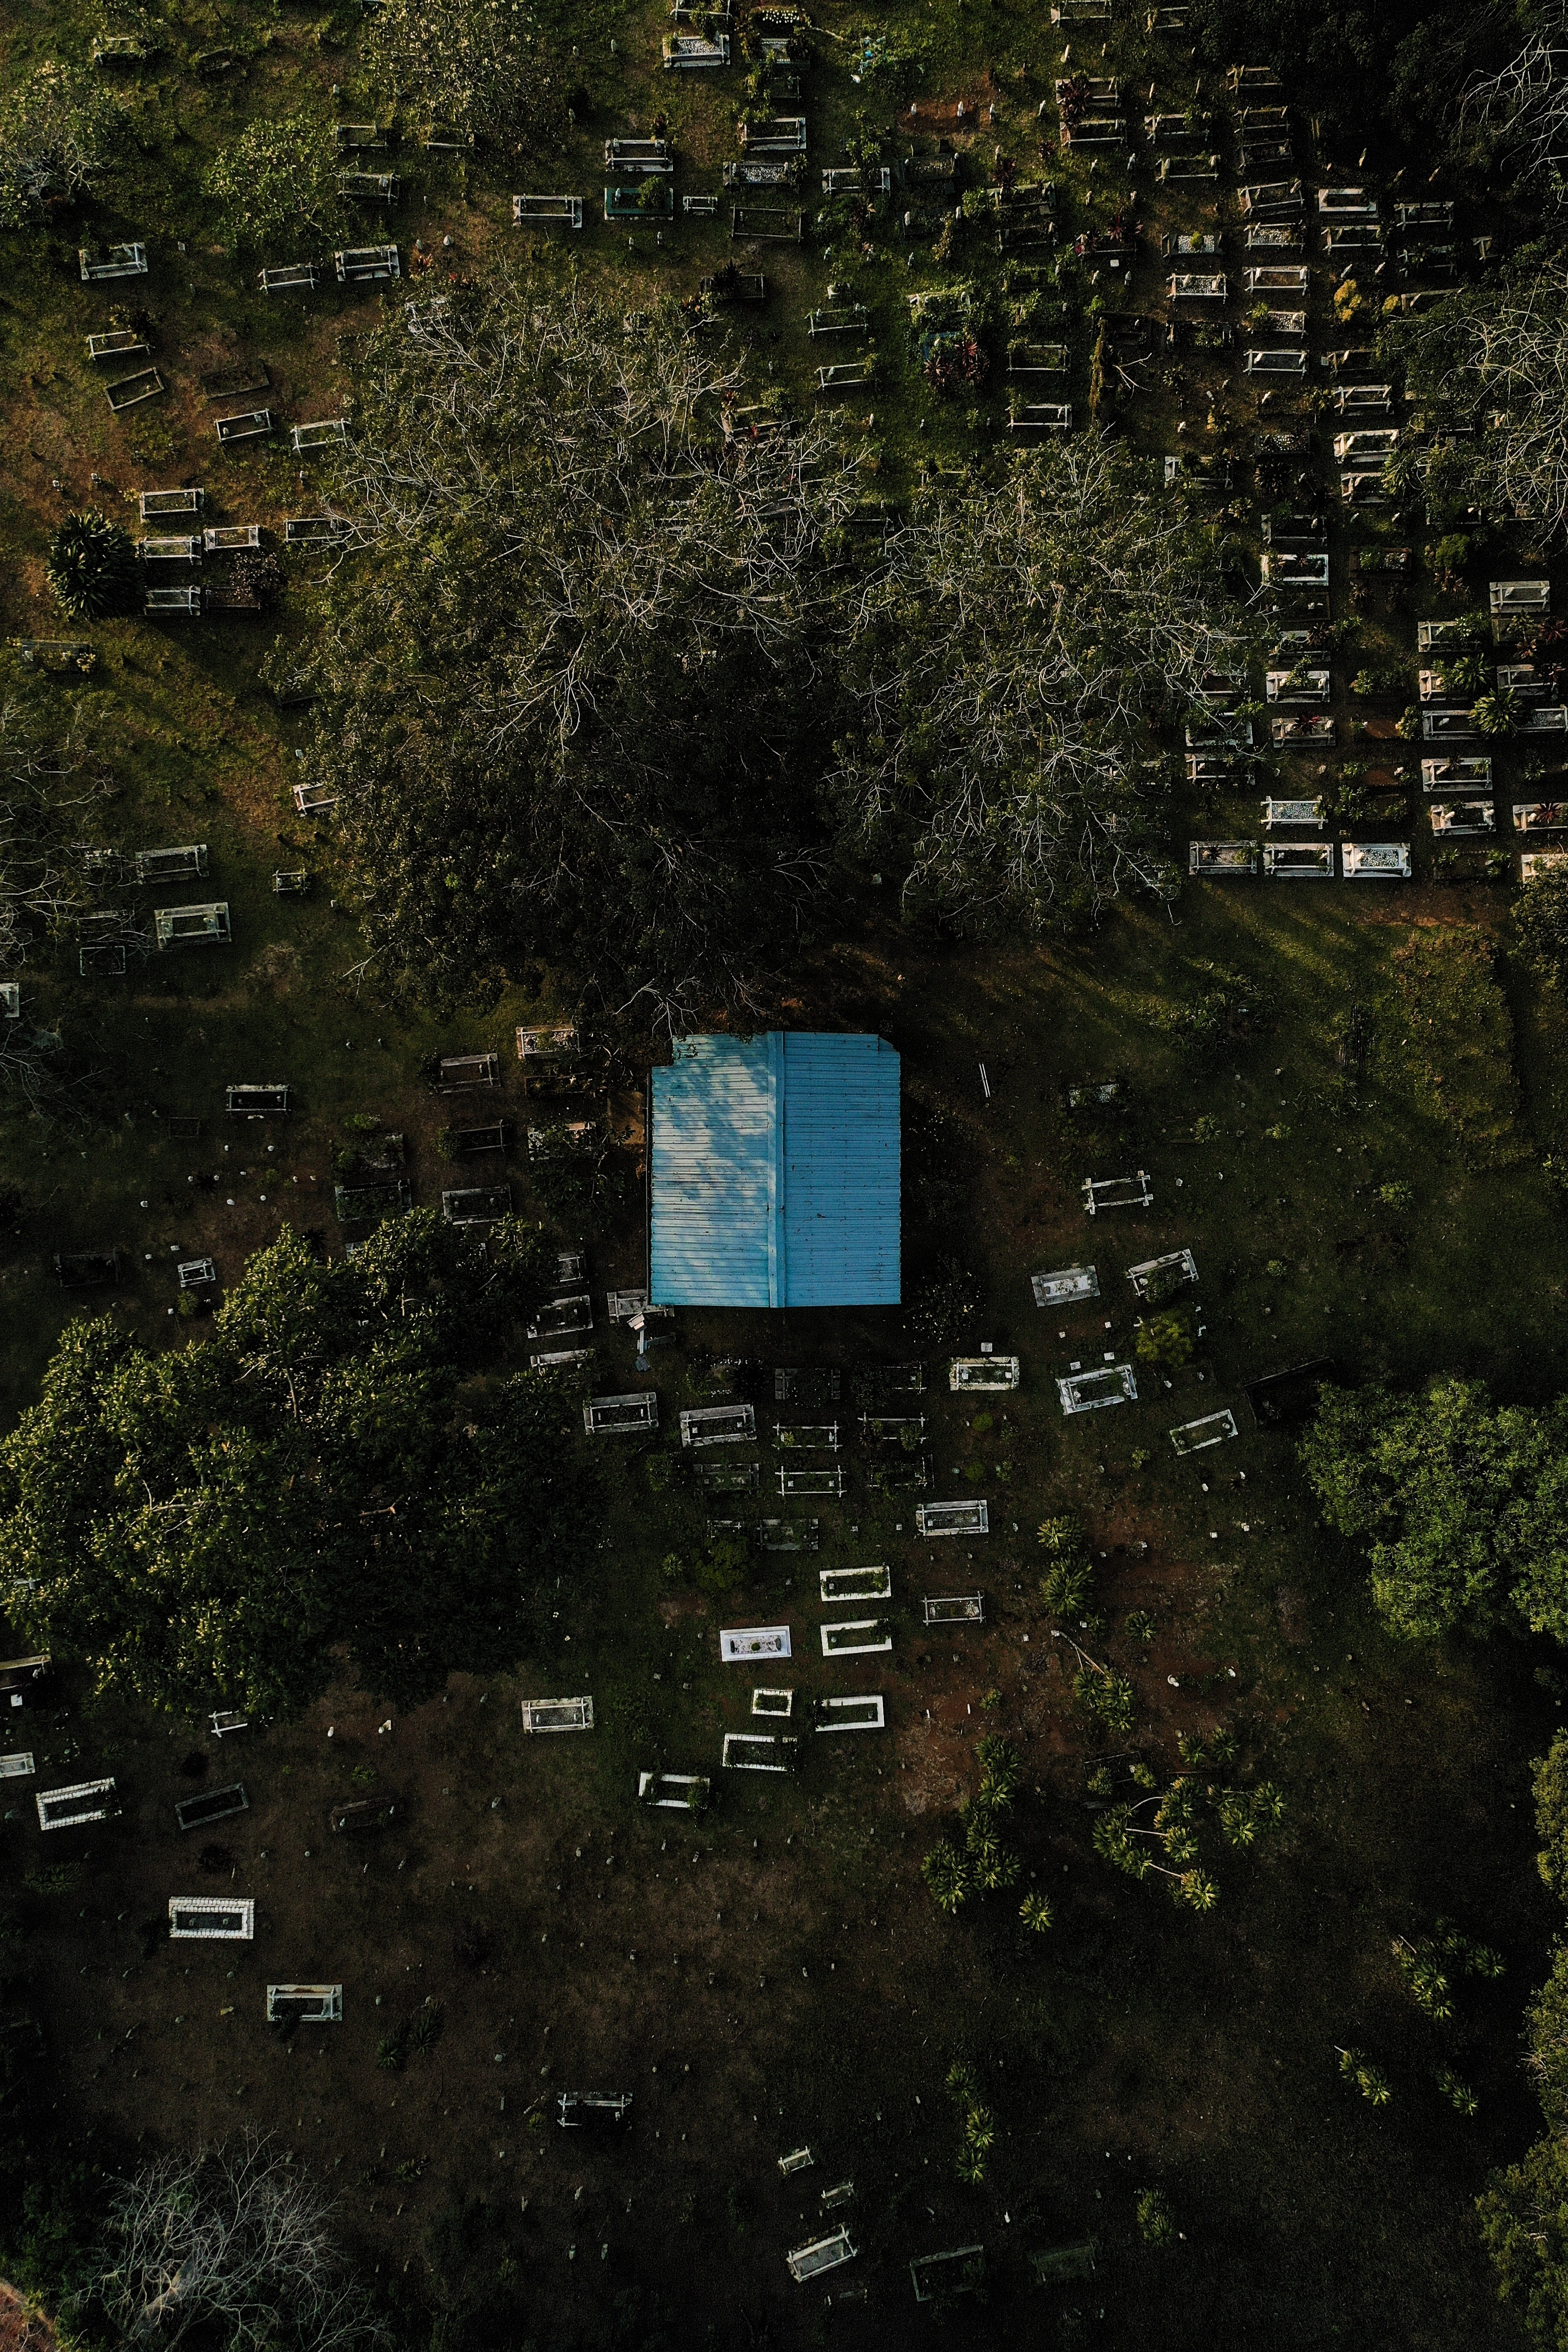 aerial view of blue house and trees